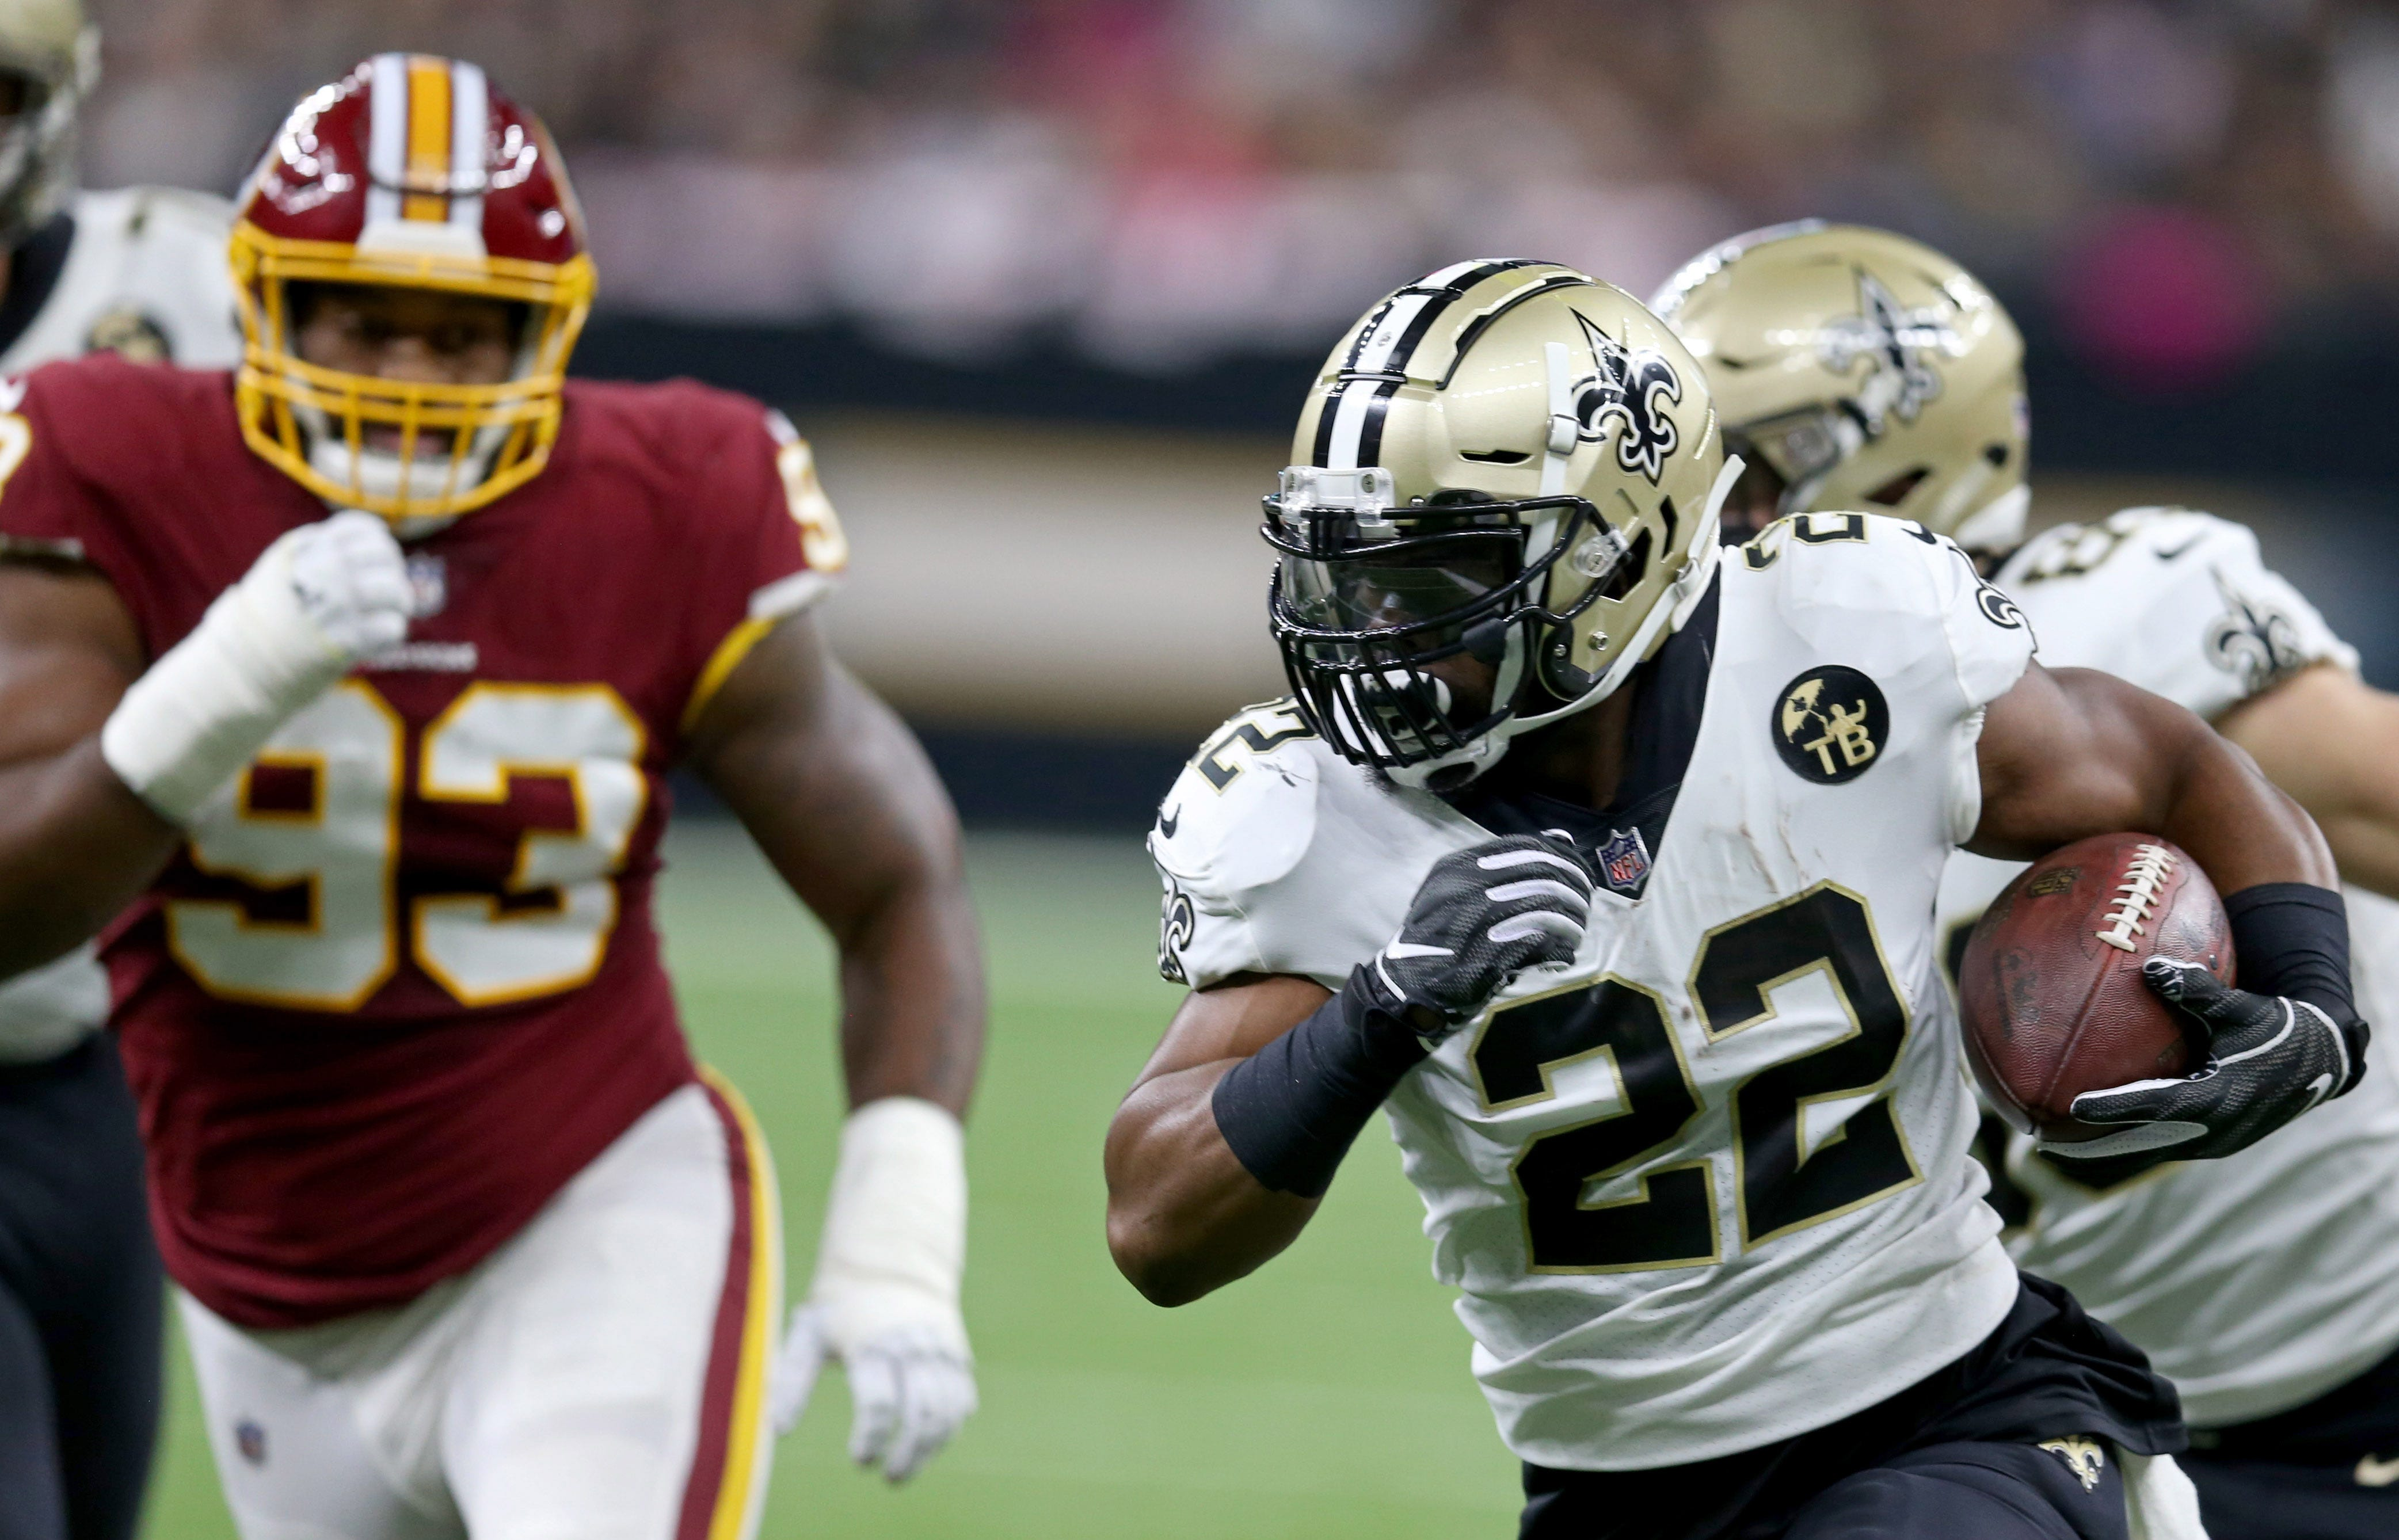 Nfl Washington Redskins At New Orleans Saints